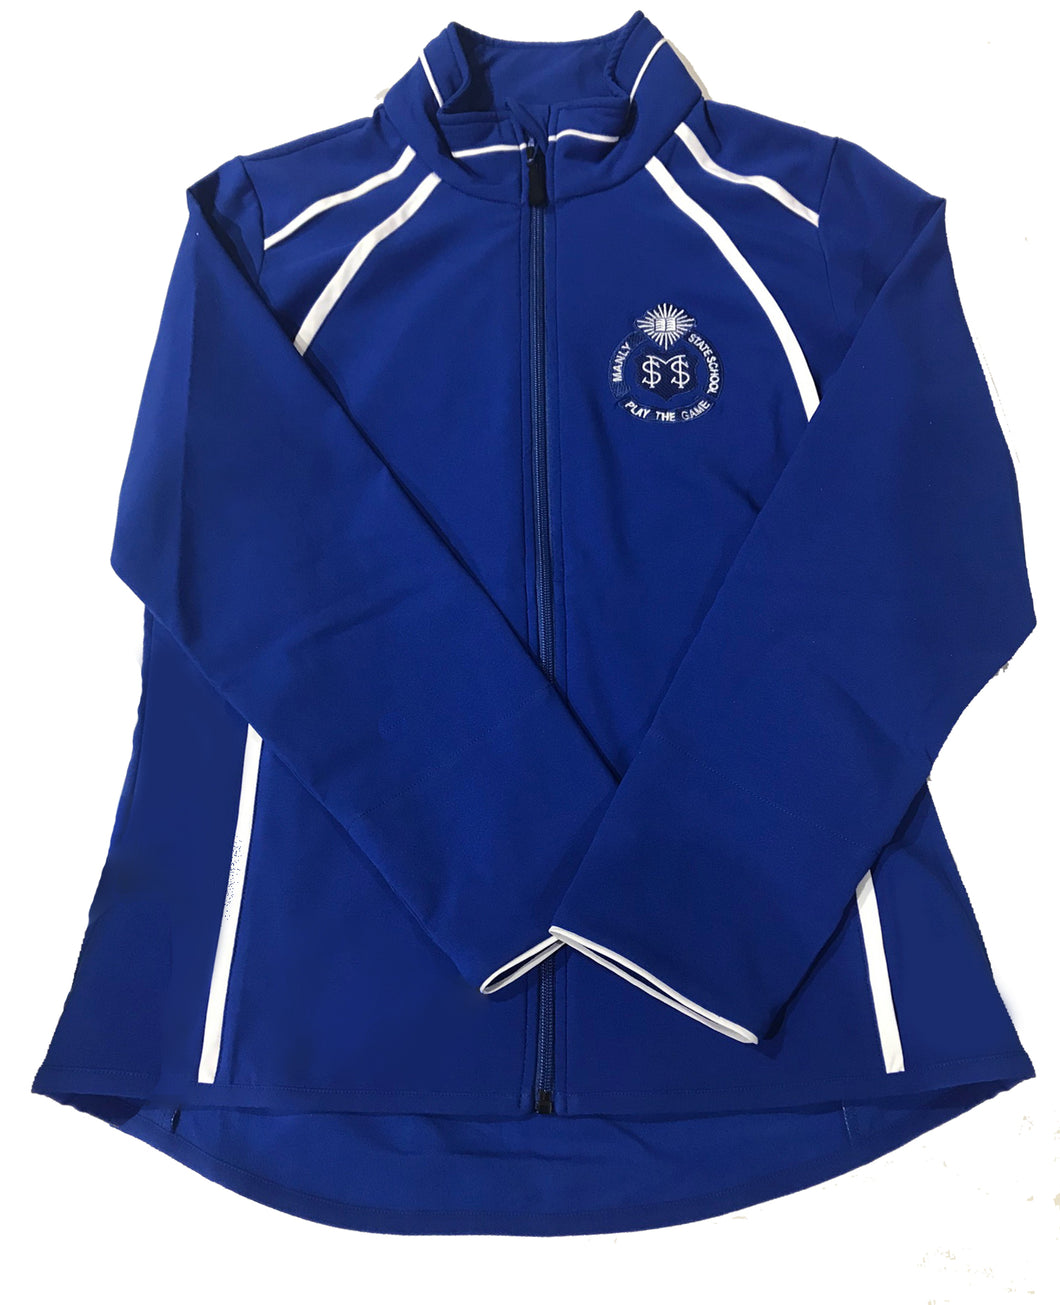 MSS Track Jacket